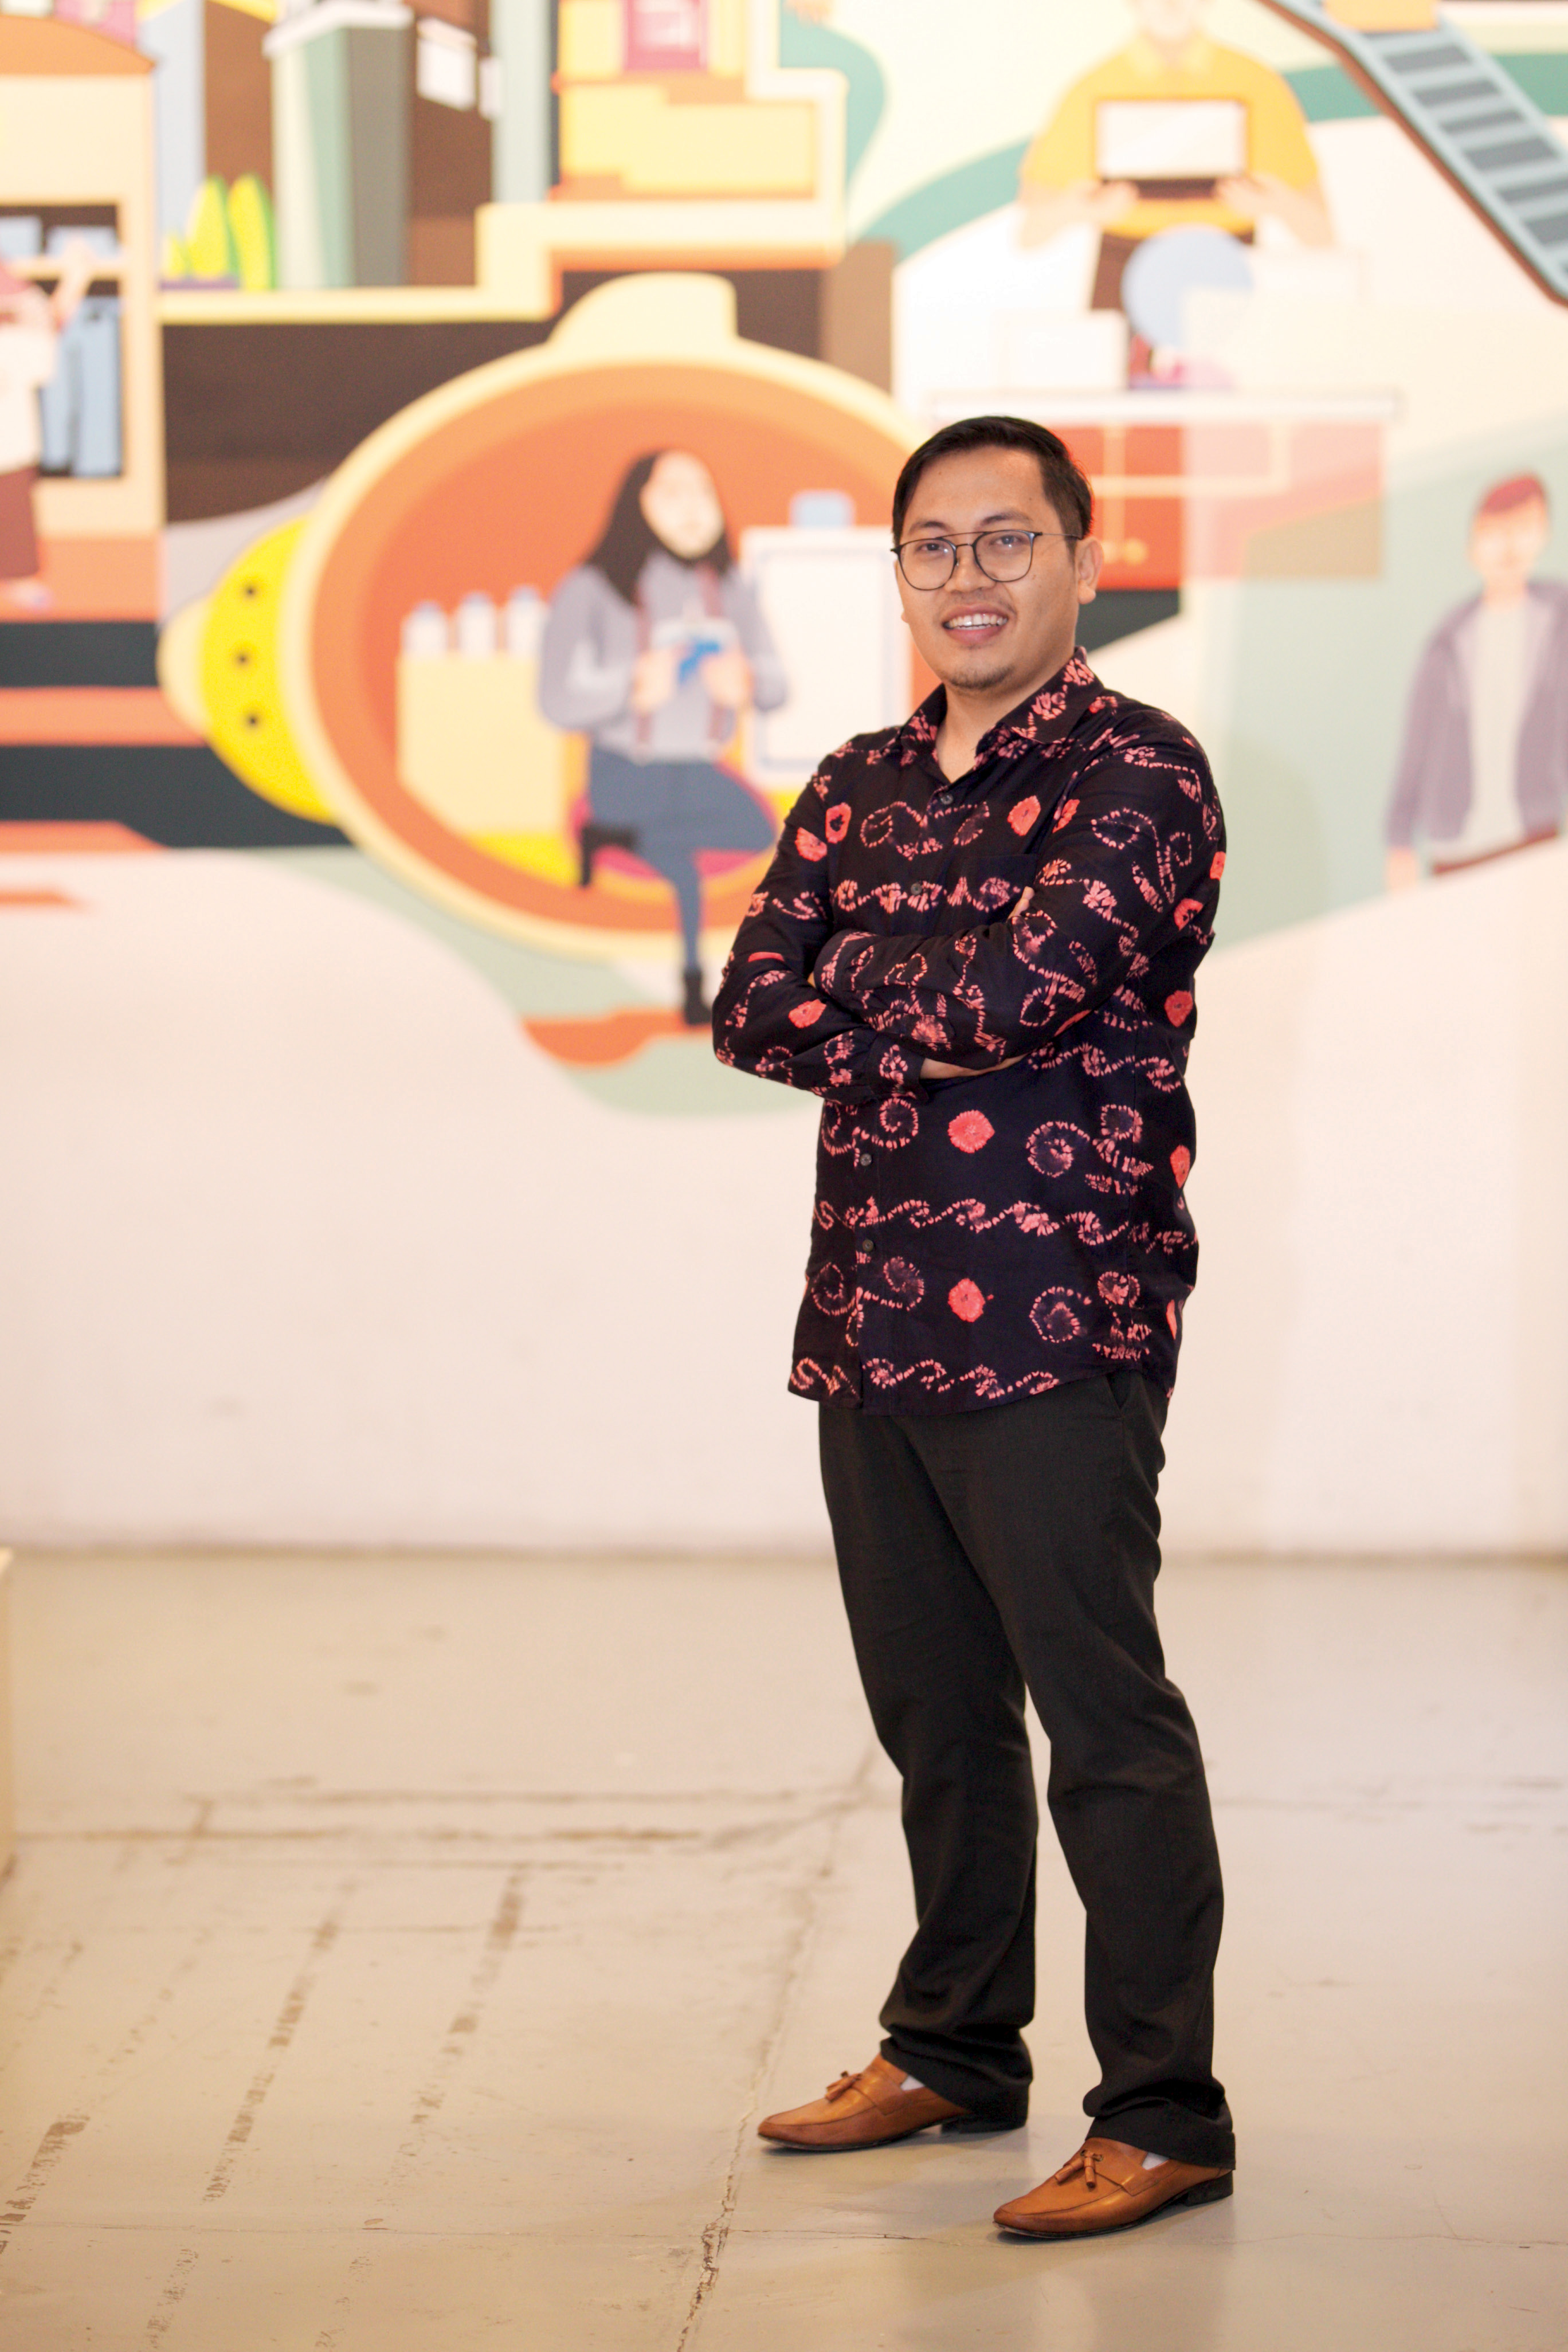 Achmad Zaky Founded Bukalapak to Improve Small Businesses